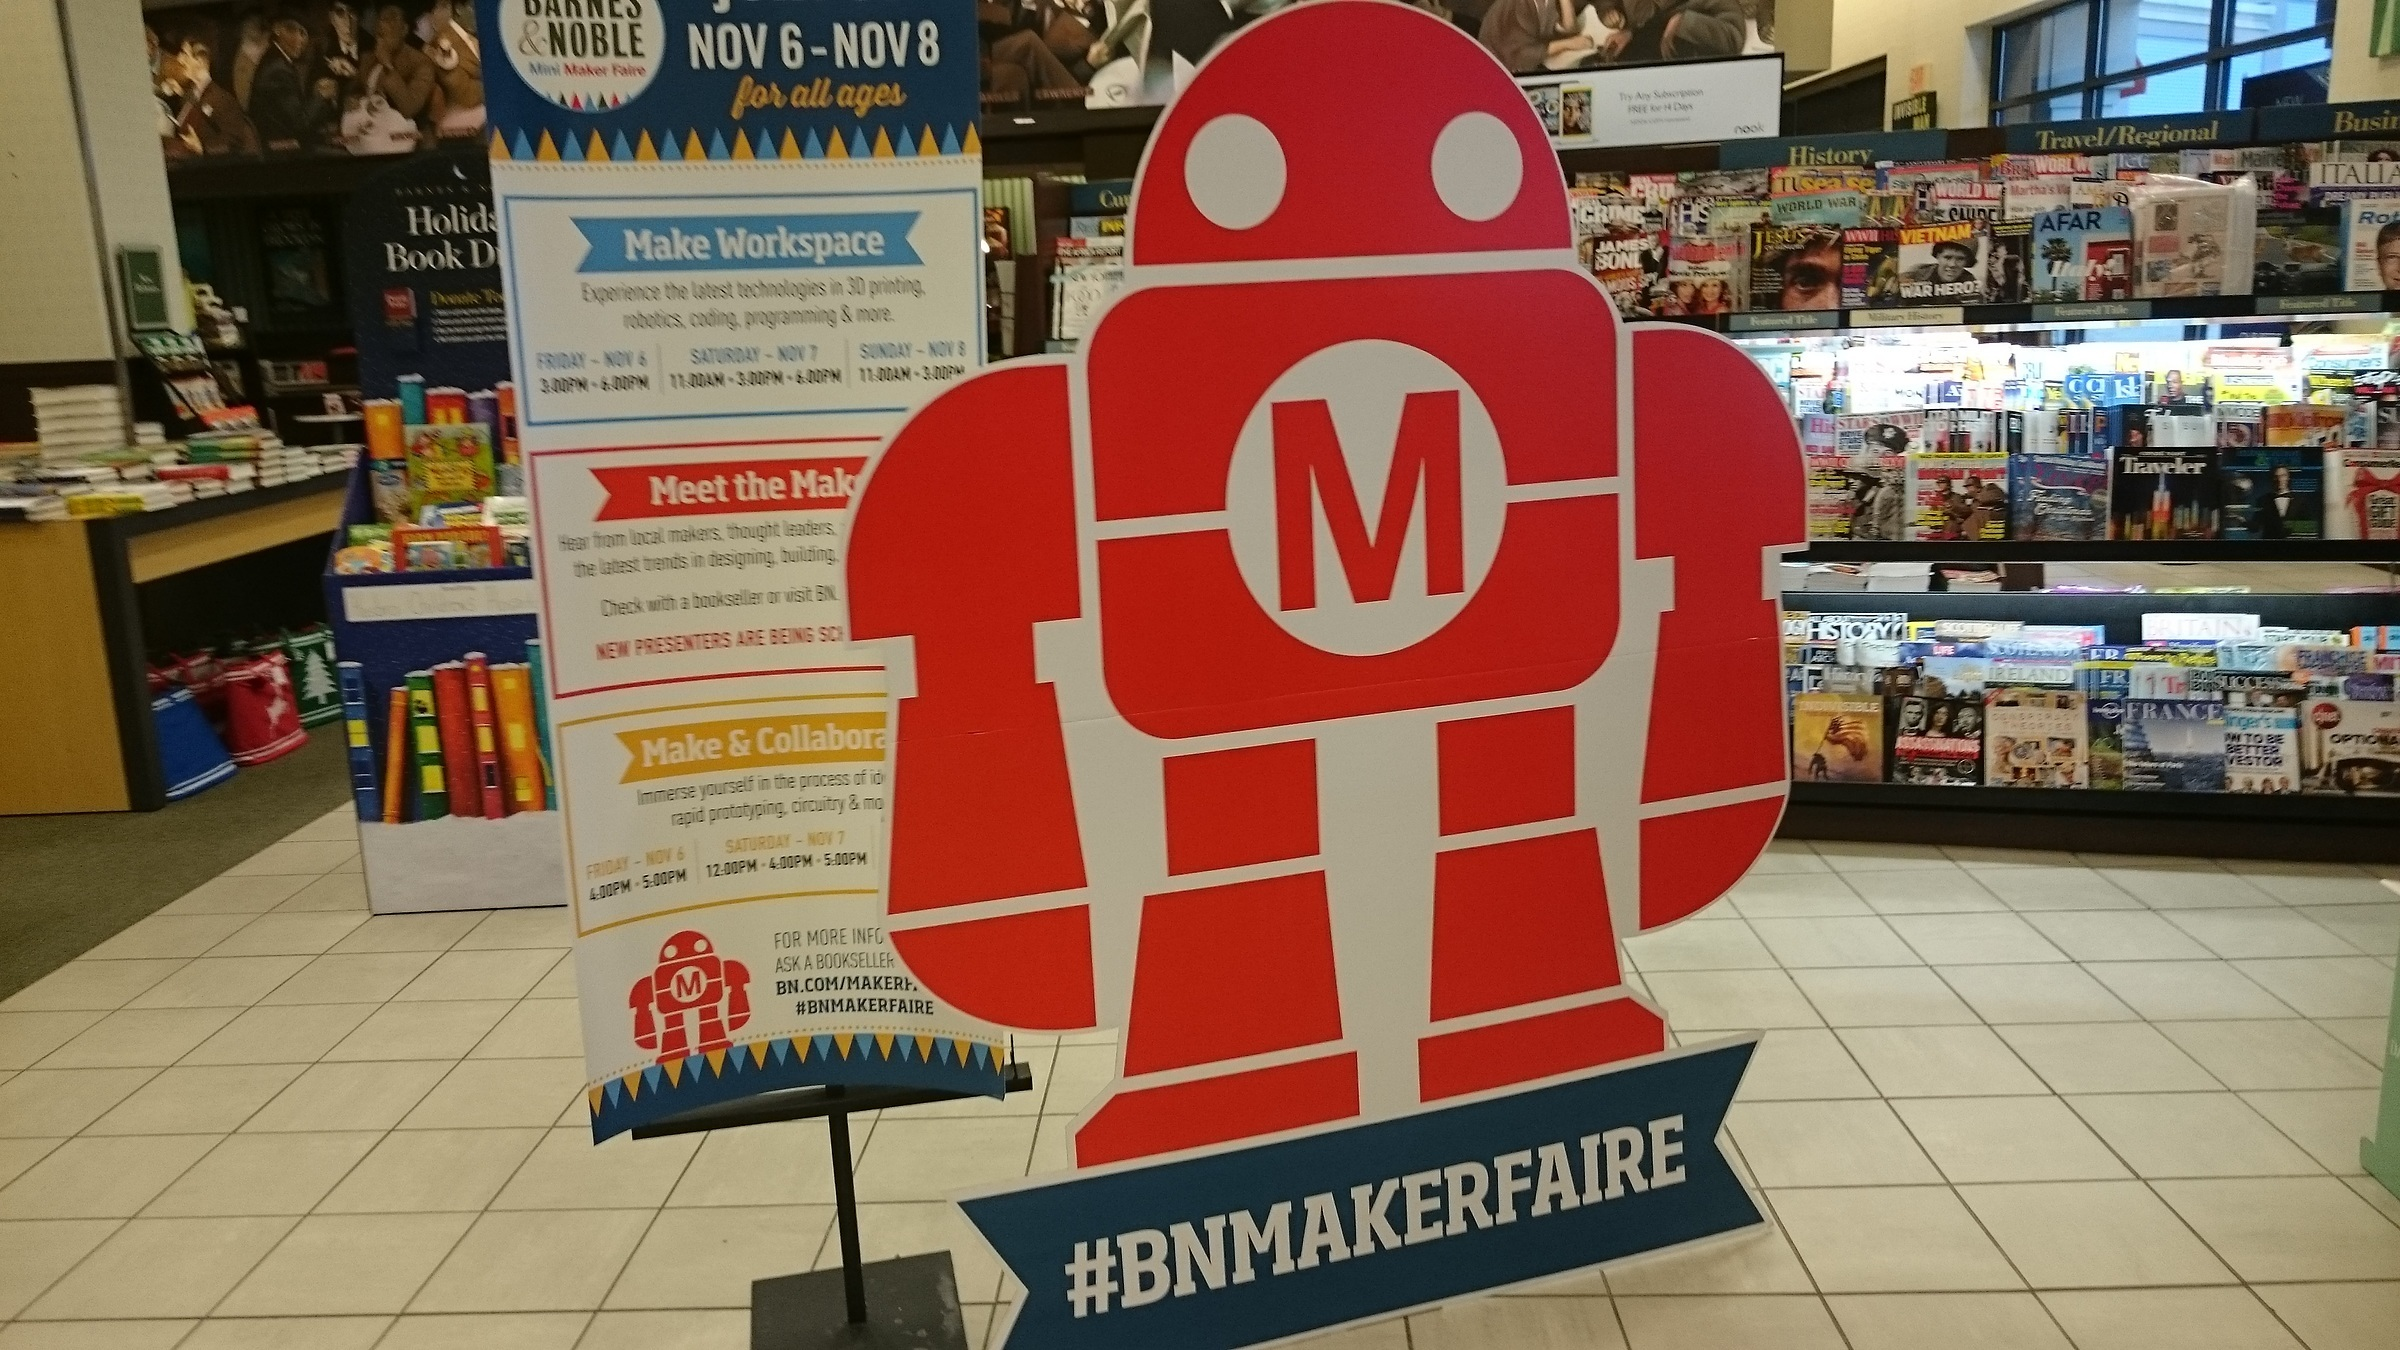 A cardboard standup of Mr Makey in Barnes and Noble Store.